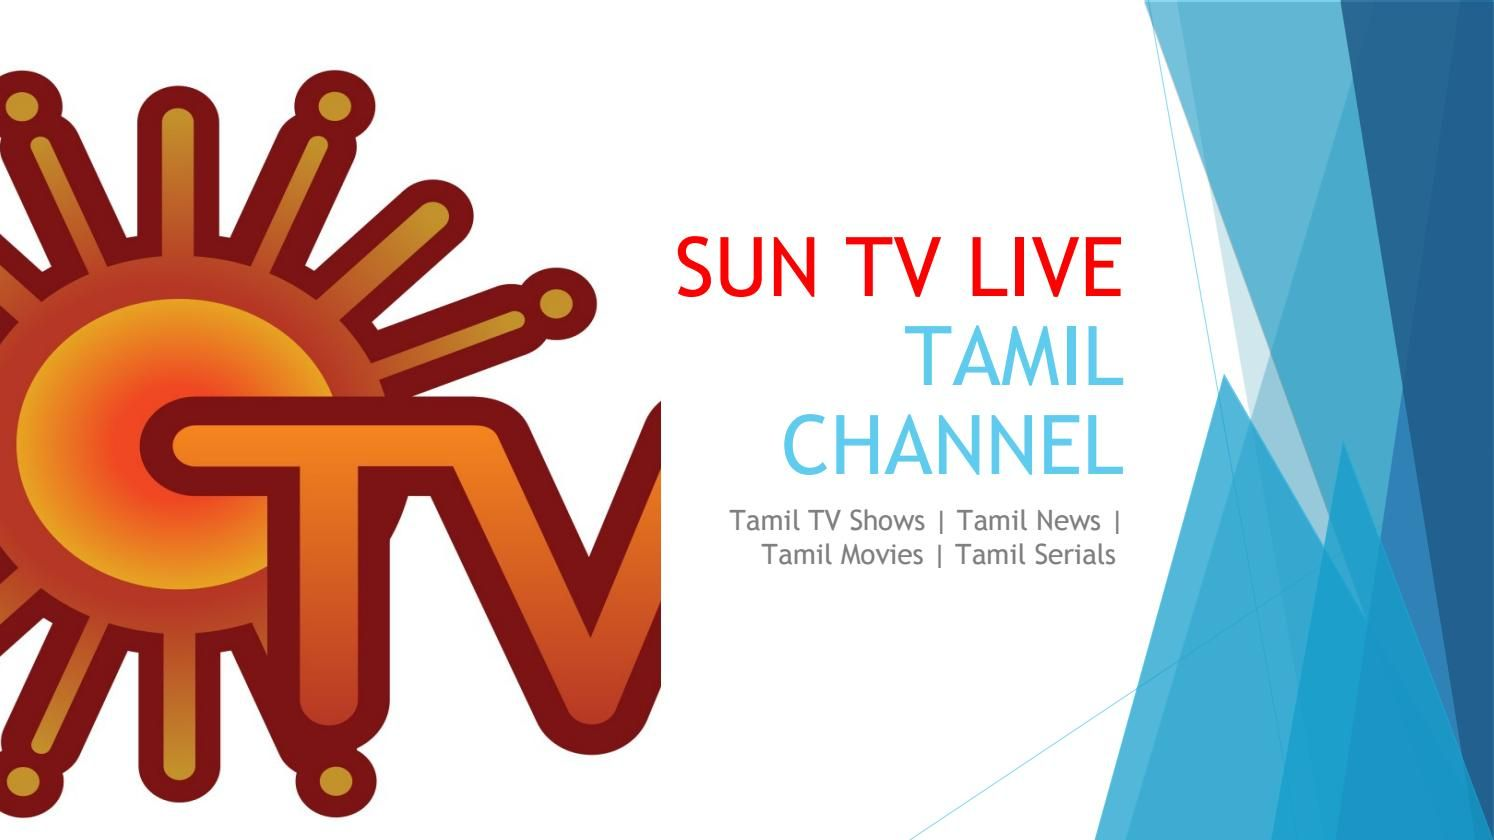 Sun tv live | Tamil TV Channels in 2019 | Tv channels, Live